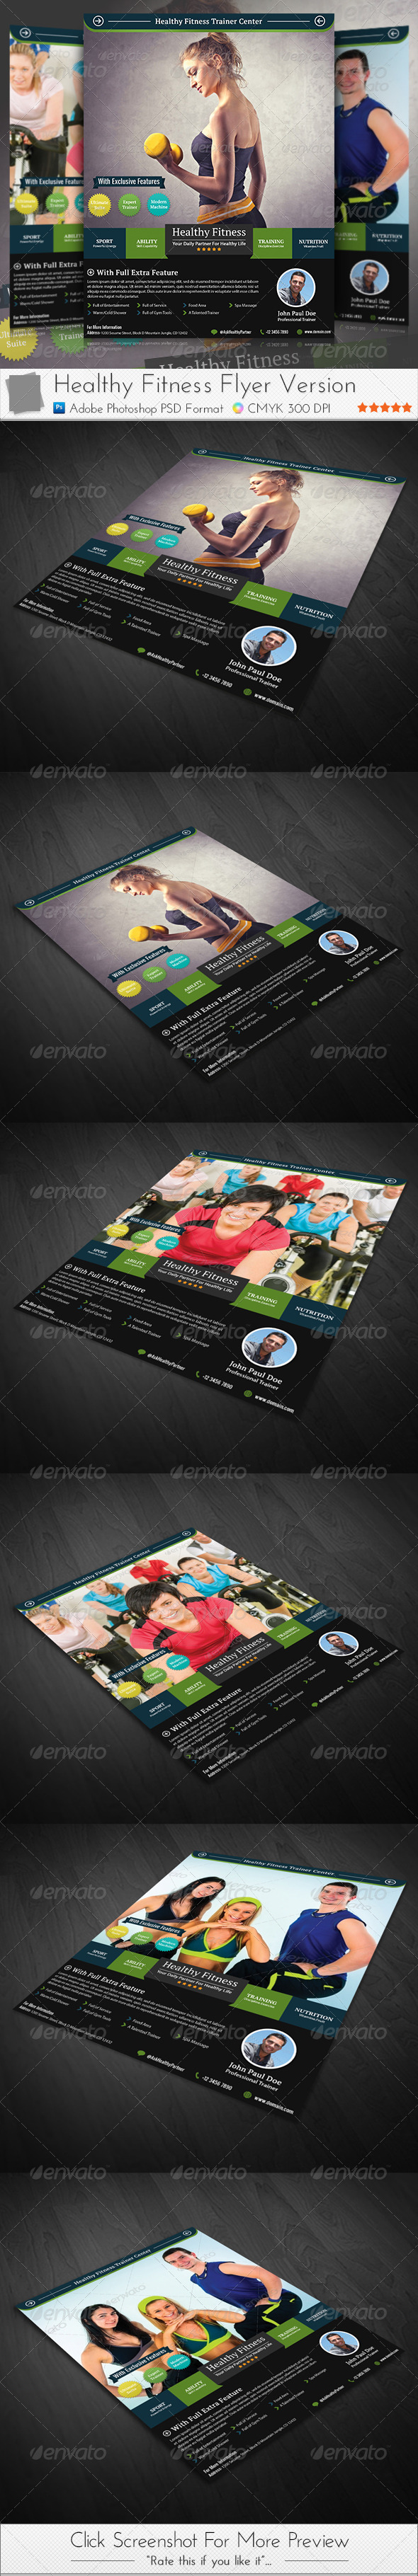 GraphicRiver Healthy Fitness Flyer 3950600